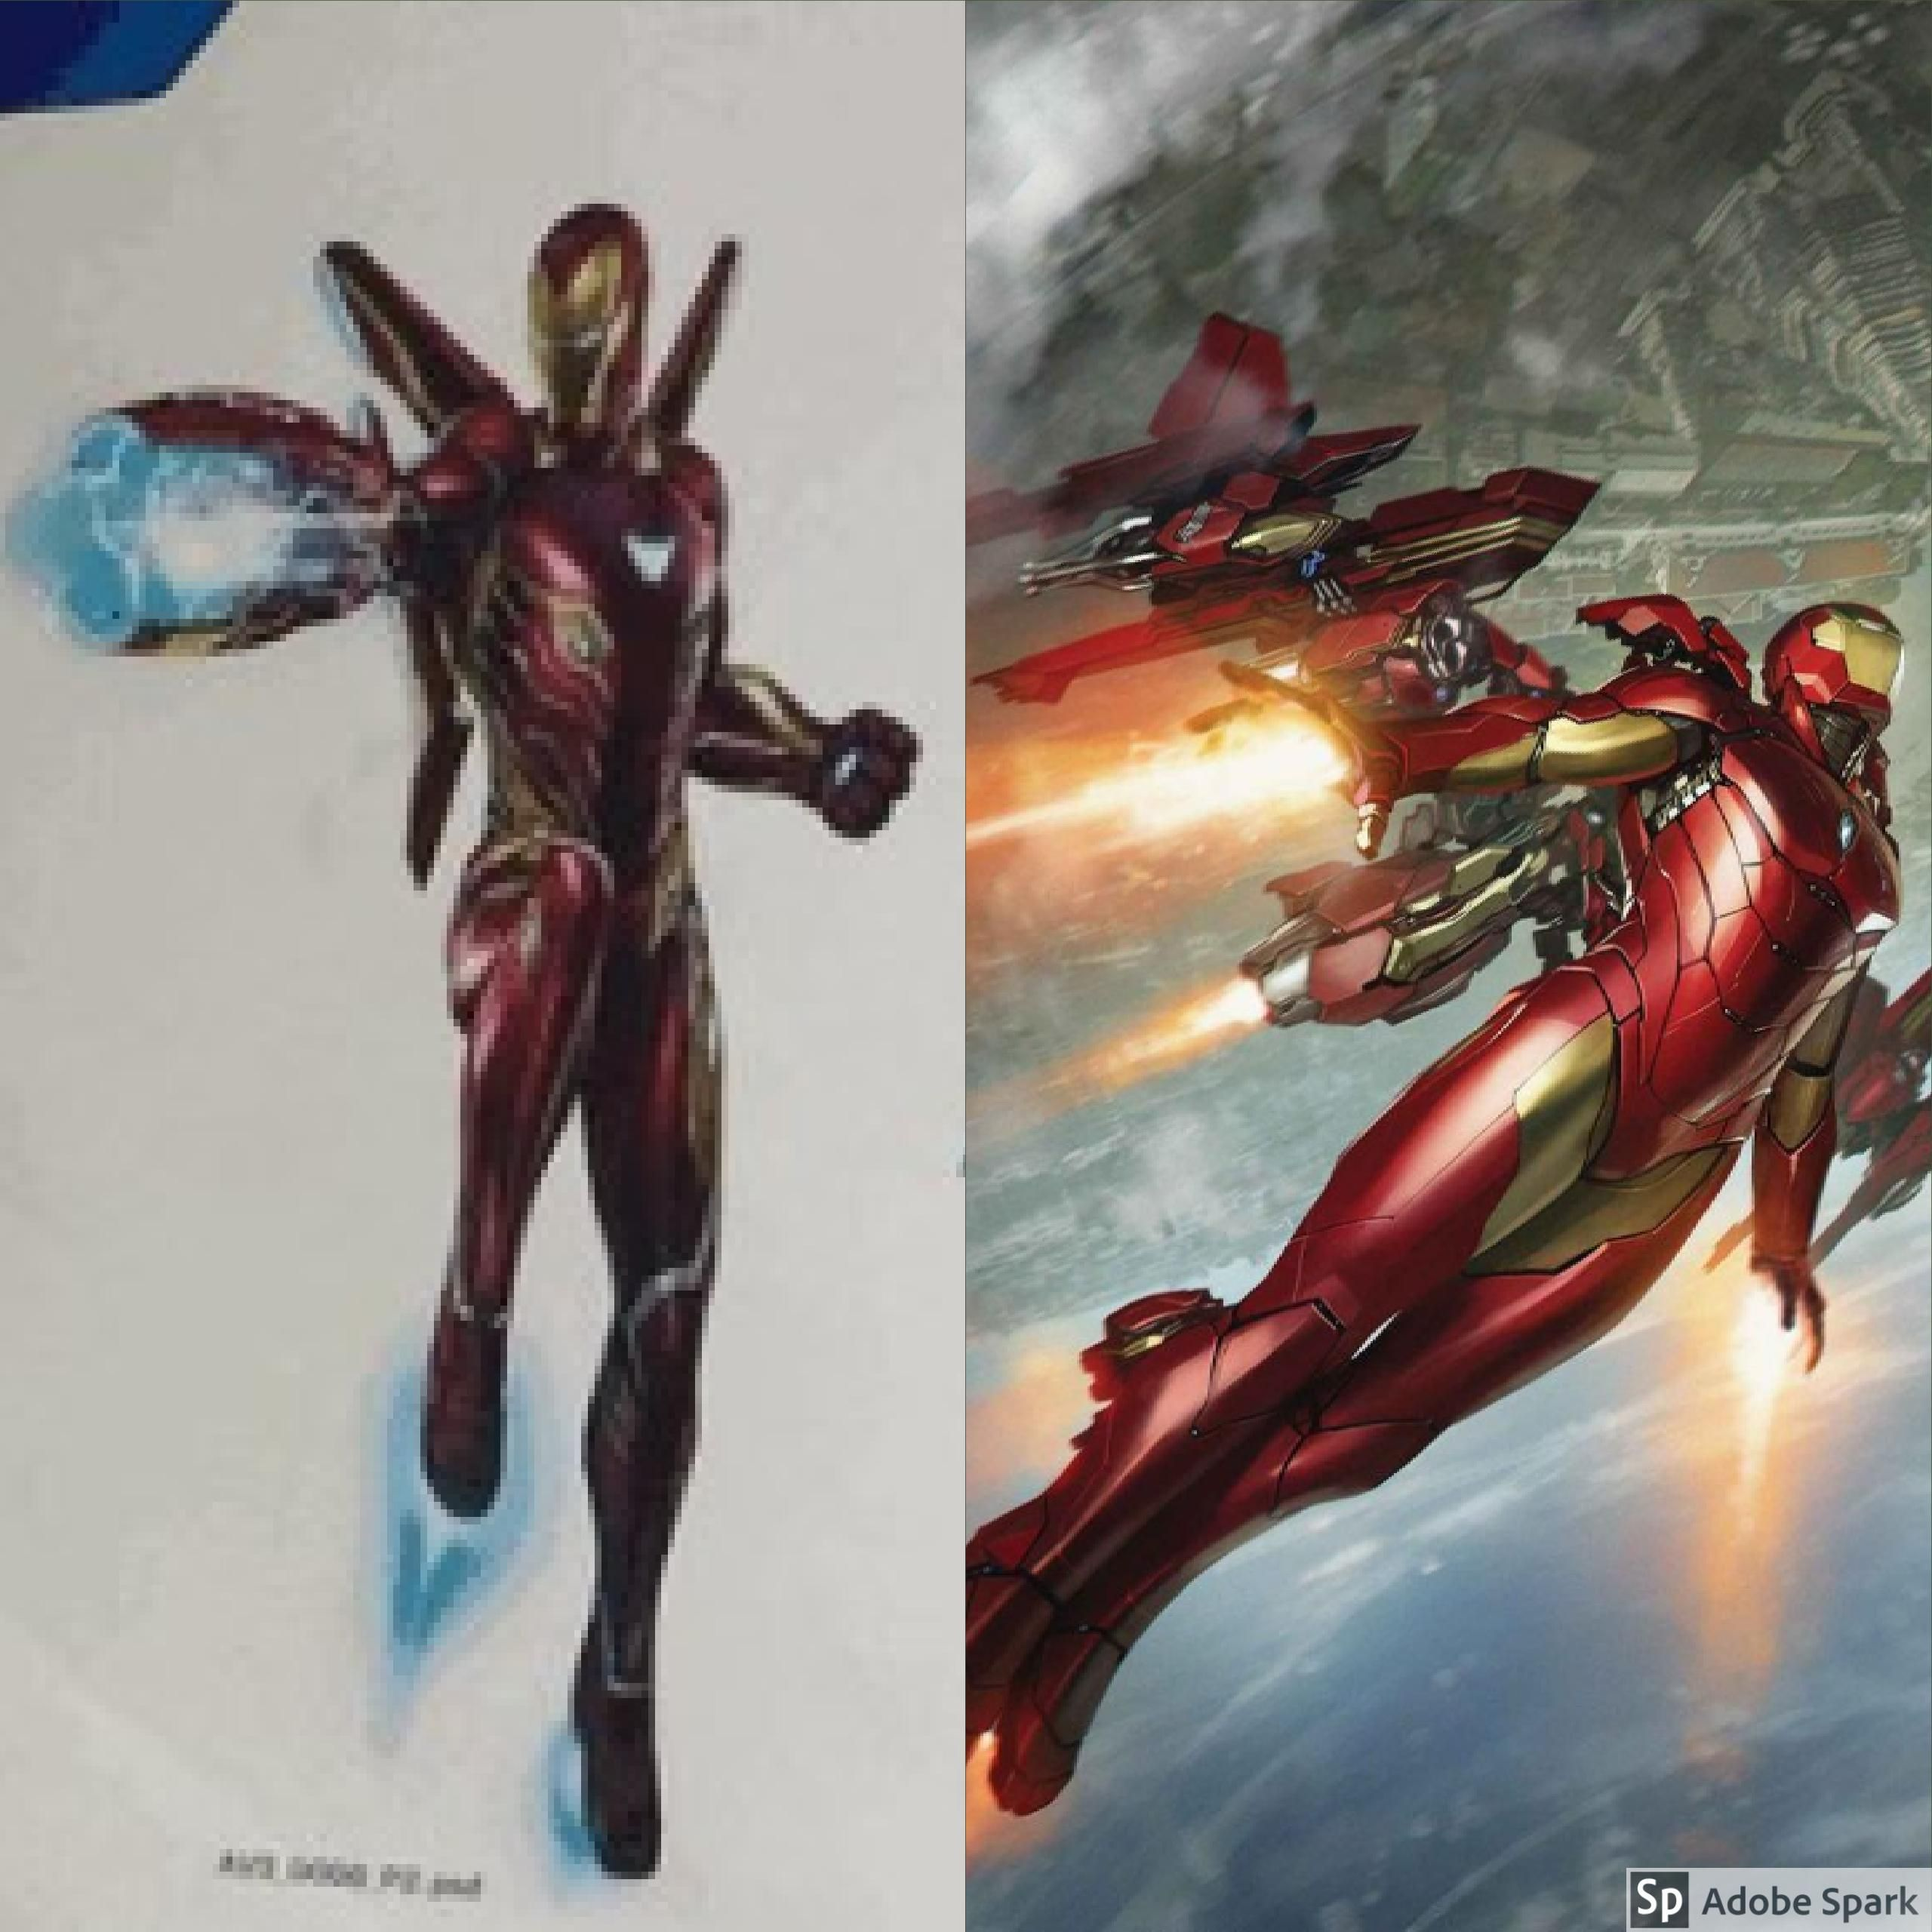 Iron Man's Infinity War Armor is inspired by Bendis's new